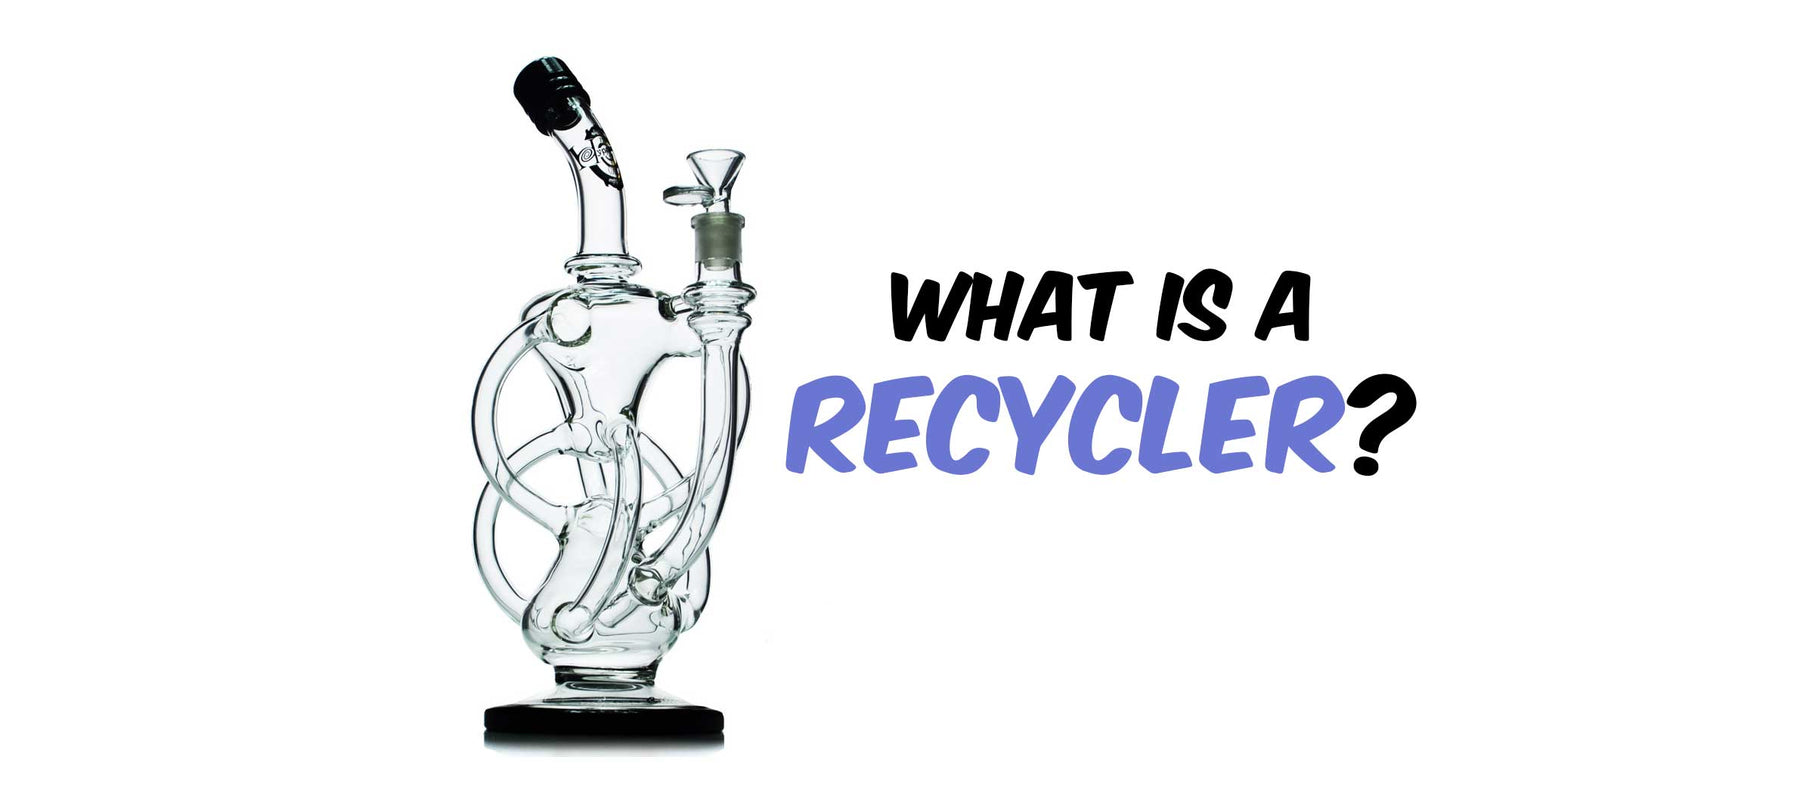 What Is A Recycler Bong?